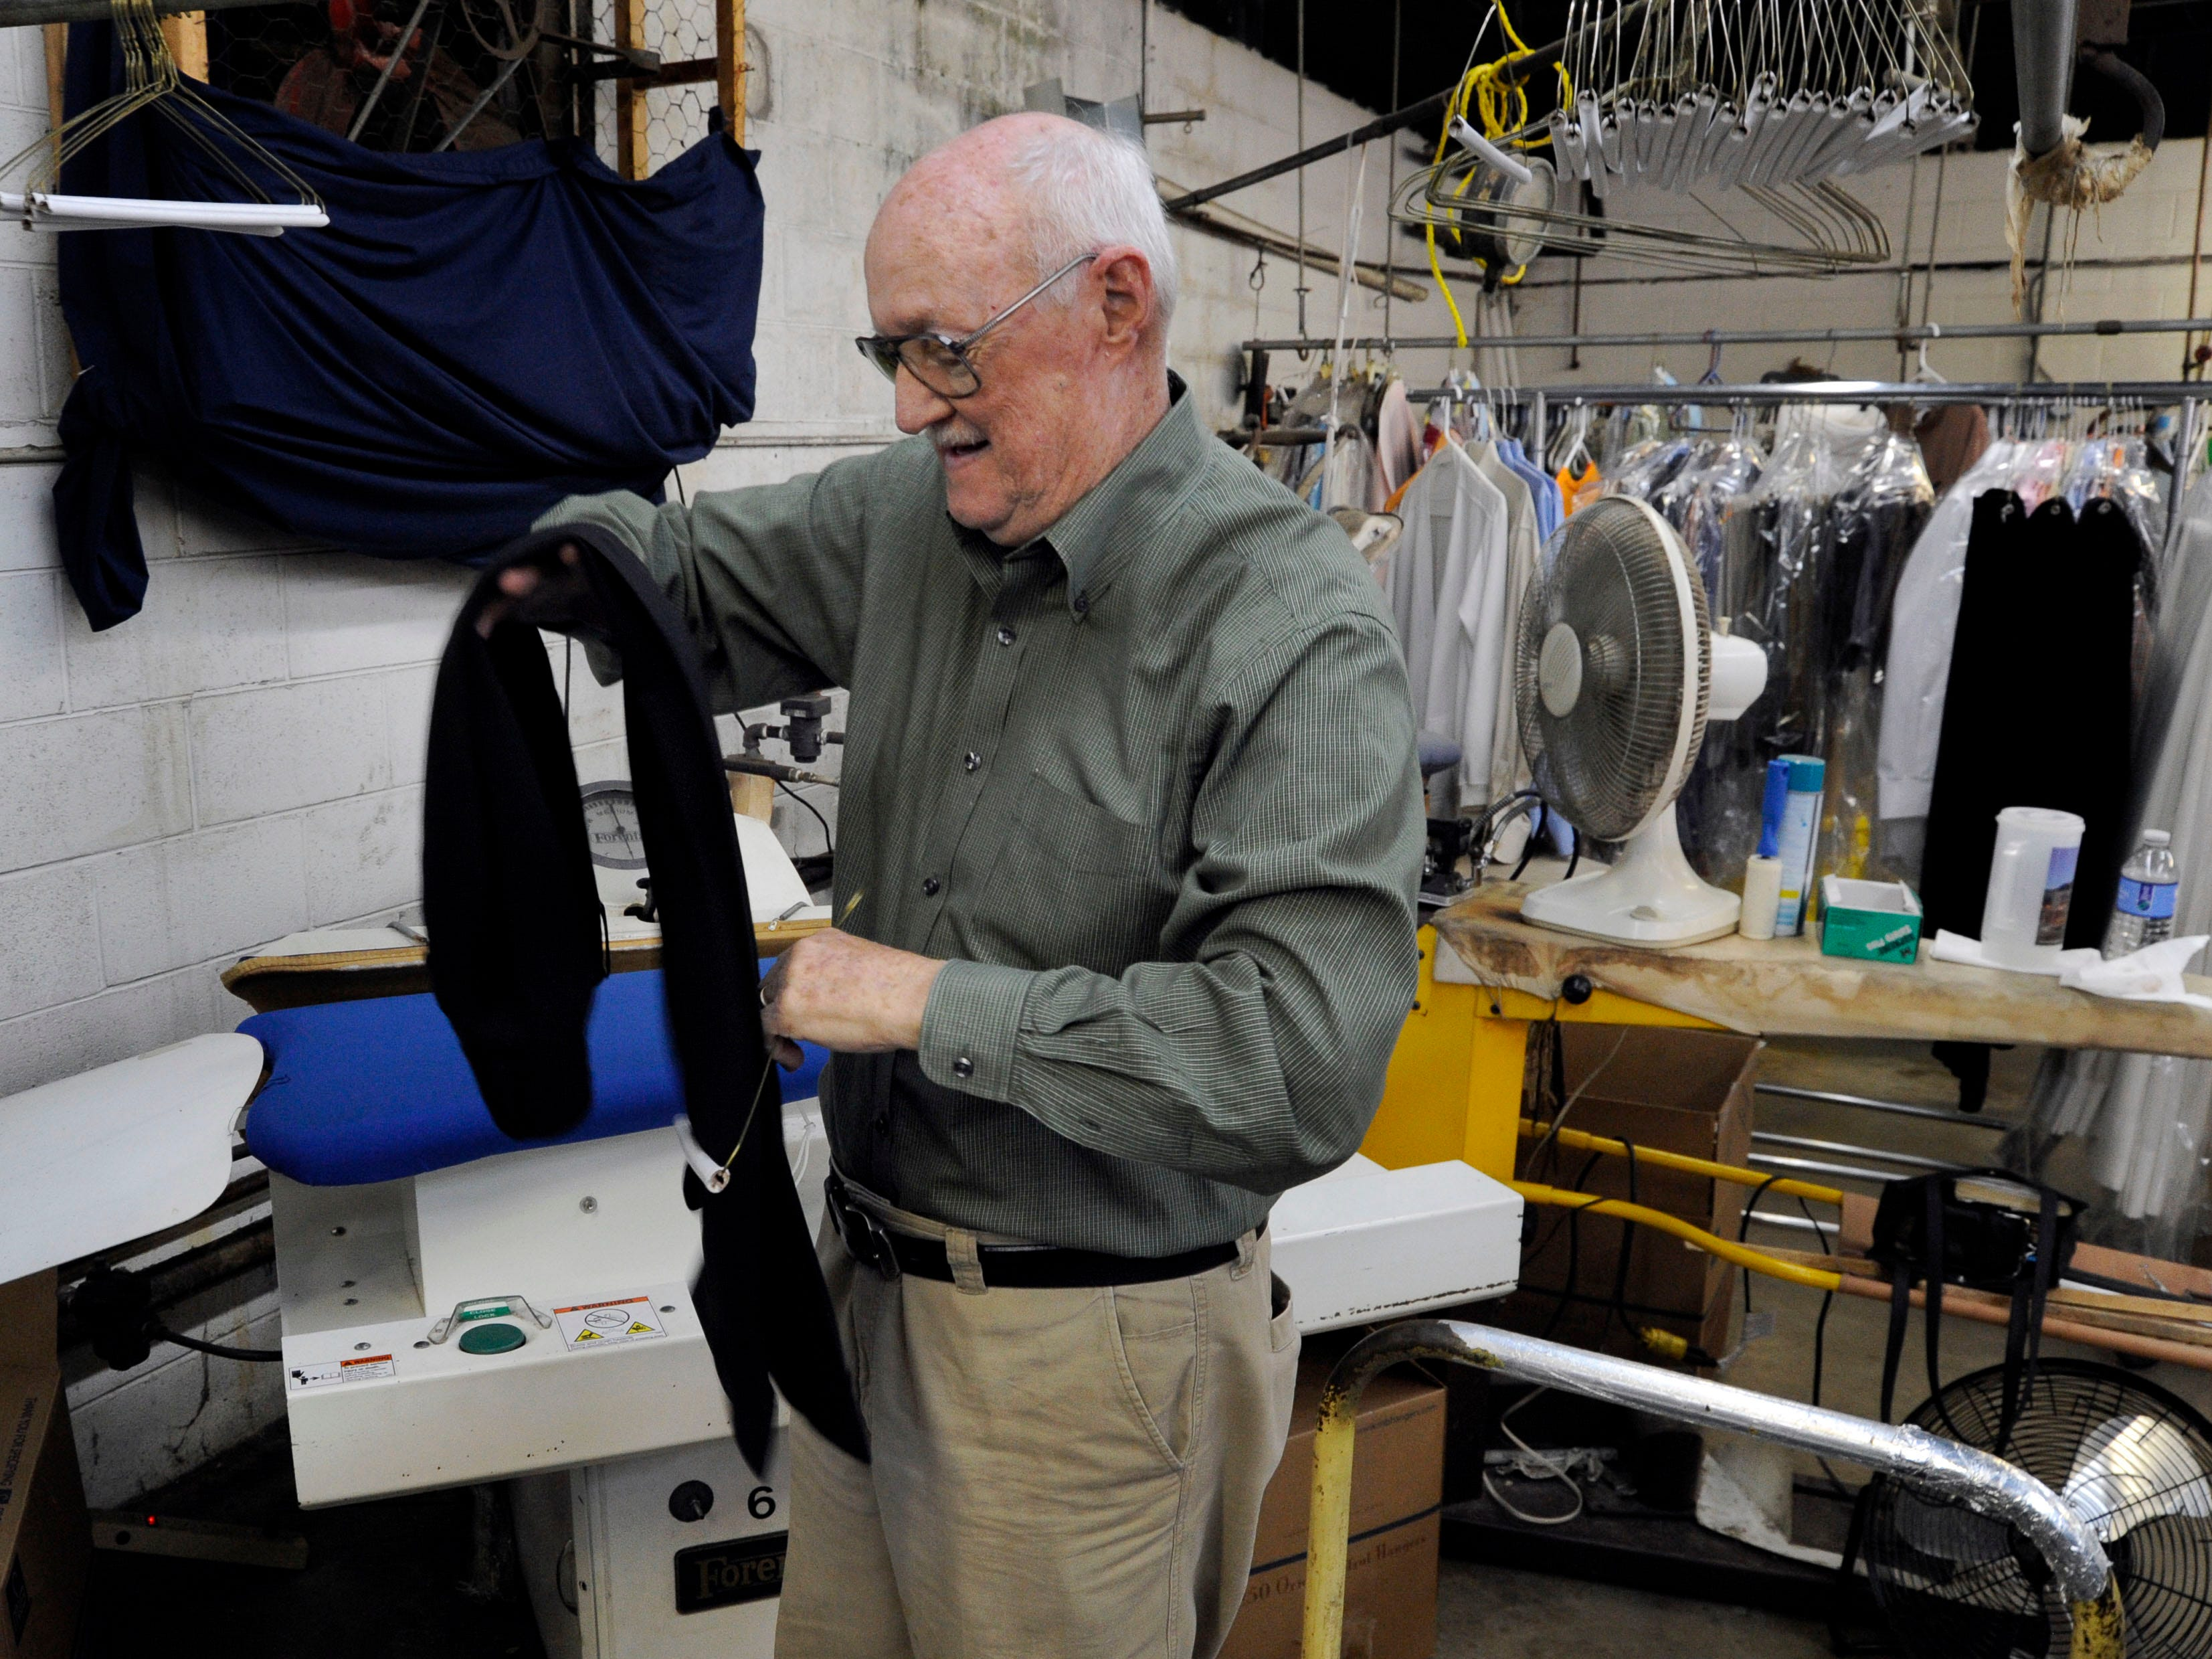 Fred T. Williams, co-owner of Knoxville Cleaners, hangs up a pair of slacks he just pressed in his store Thursday, Dec. 1, 2011. Williams said his business, in the 3000 block of Chapman Highway, is down at least 30 percent since January because of the traffic changed caused by the closing of Henley Bridge.